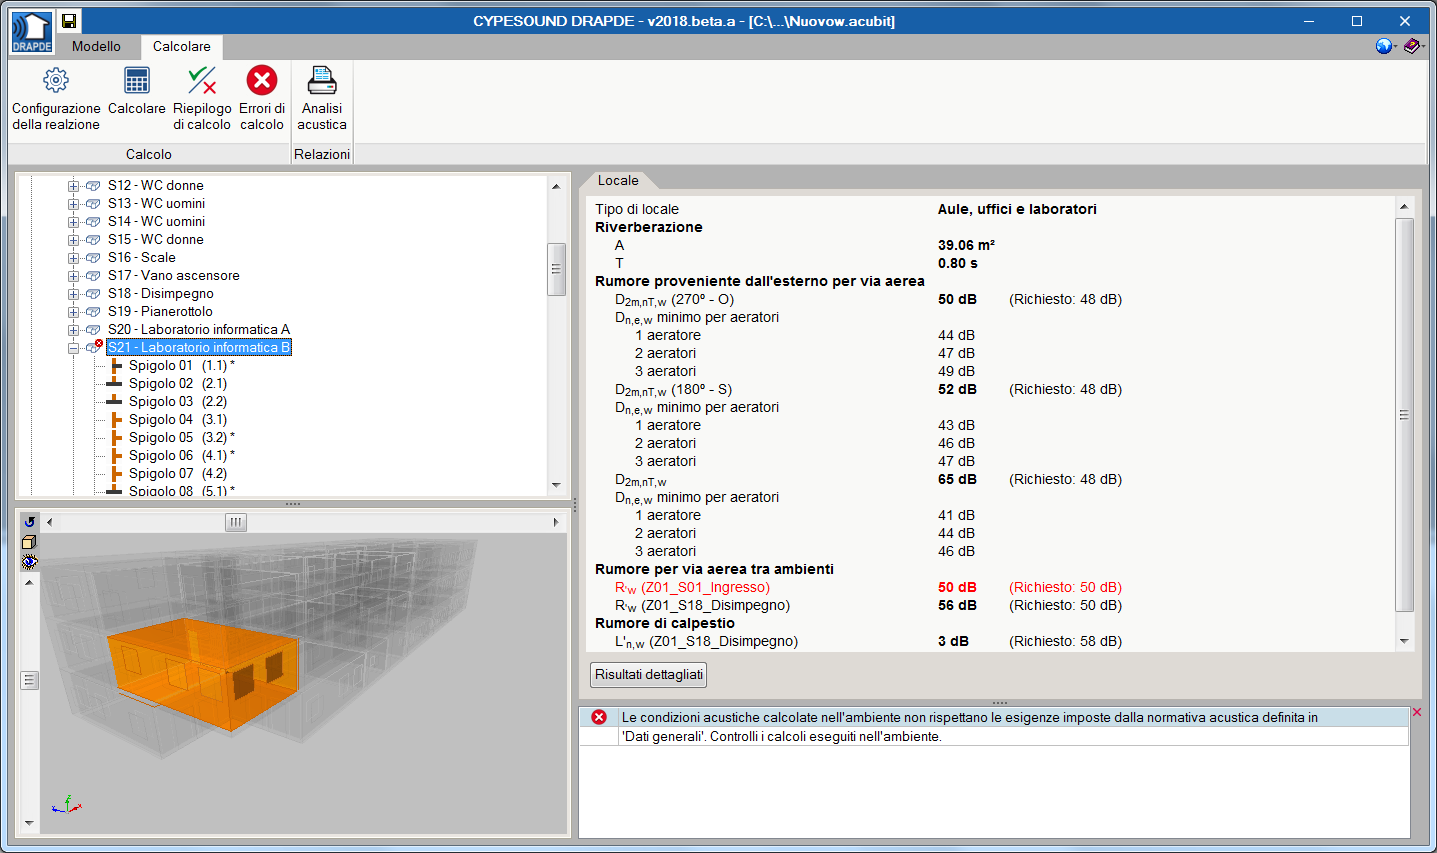 athsoftware-suite-bim-cypesound-DRAPDE screenshot2